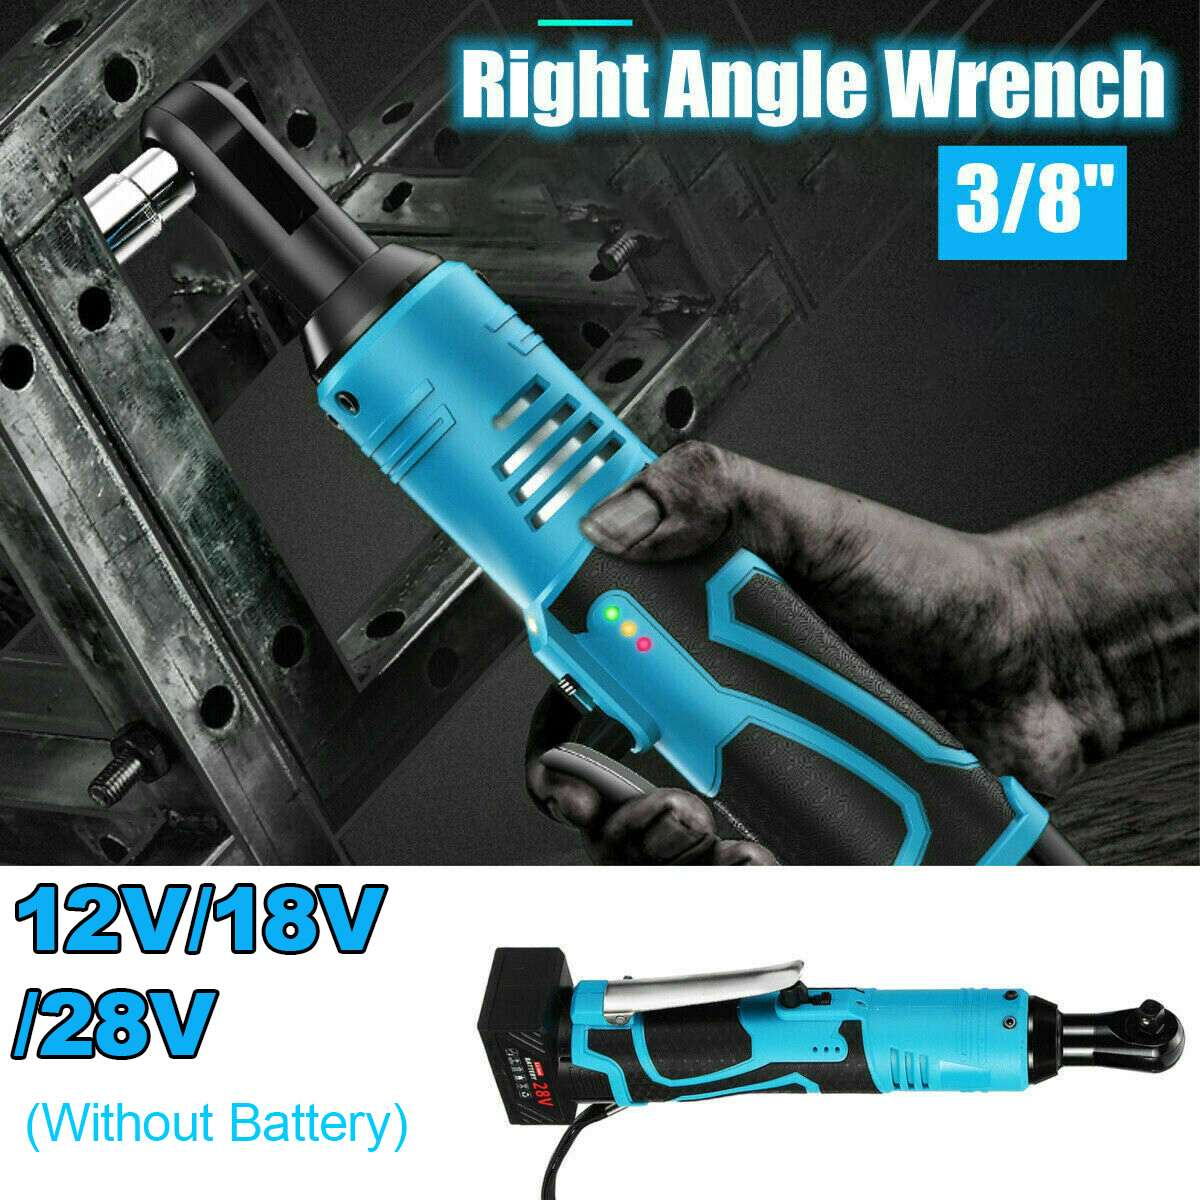 12V/18V/28V Electric Cordless Ratchet Wrench 90 Degree Right Angle Tool Ratchet Large Torque Capacity Right Angle Wrench